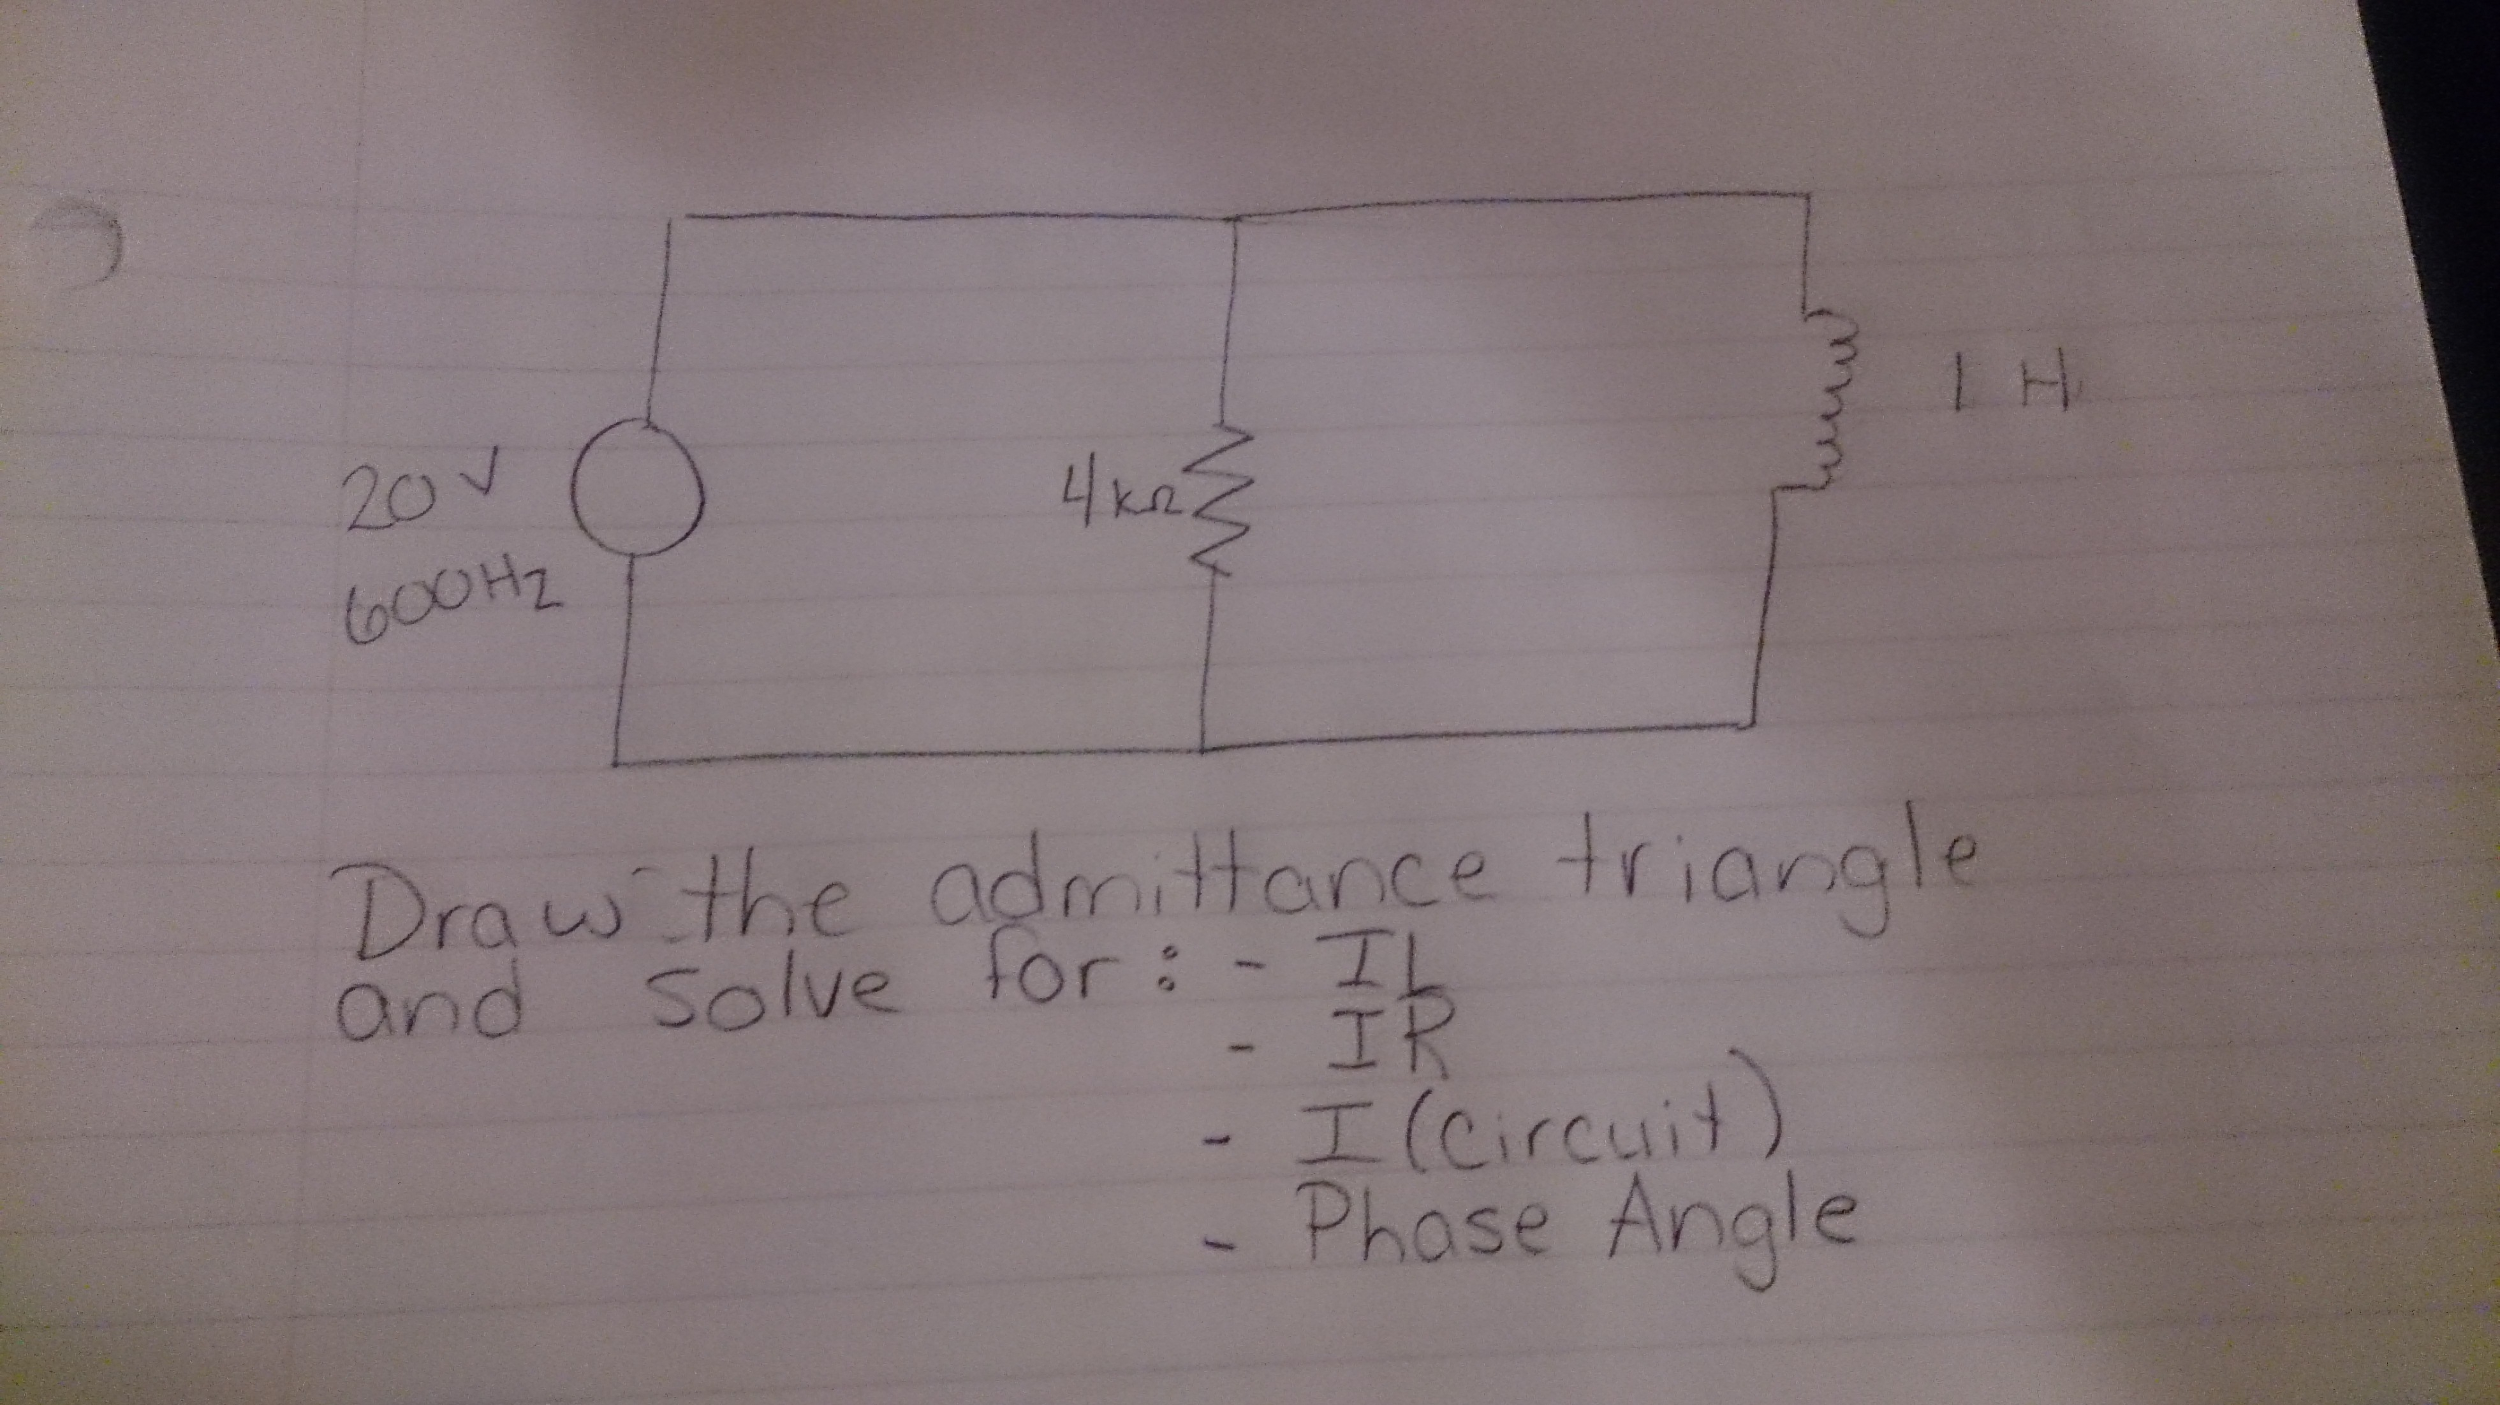 Draw the admittance triangle and solve for : IL I